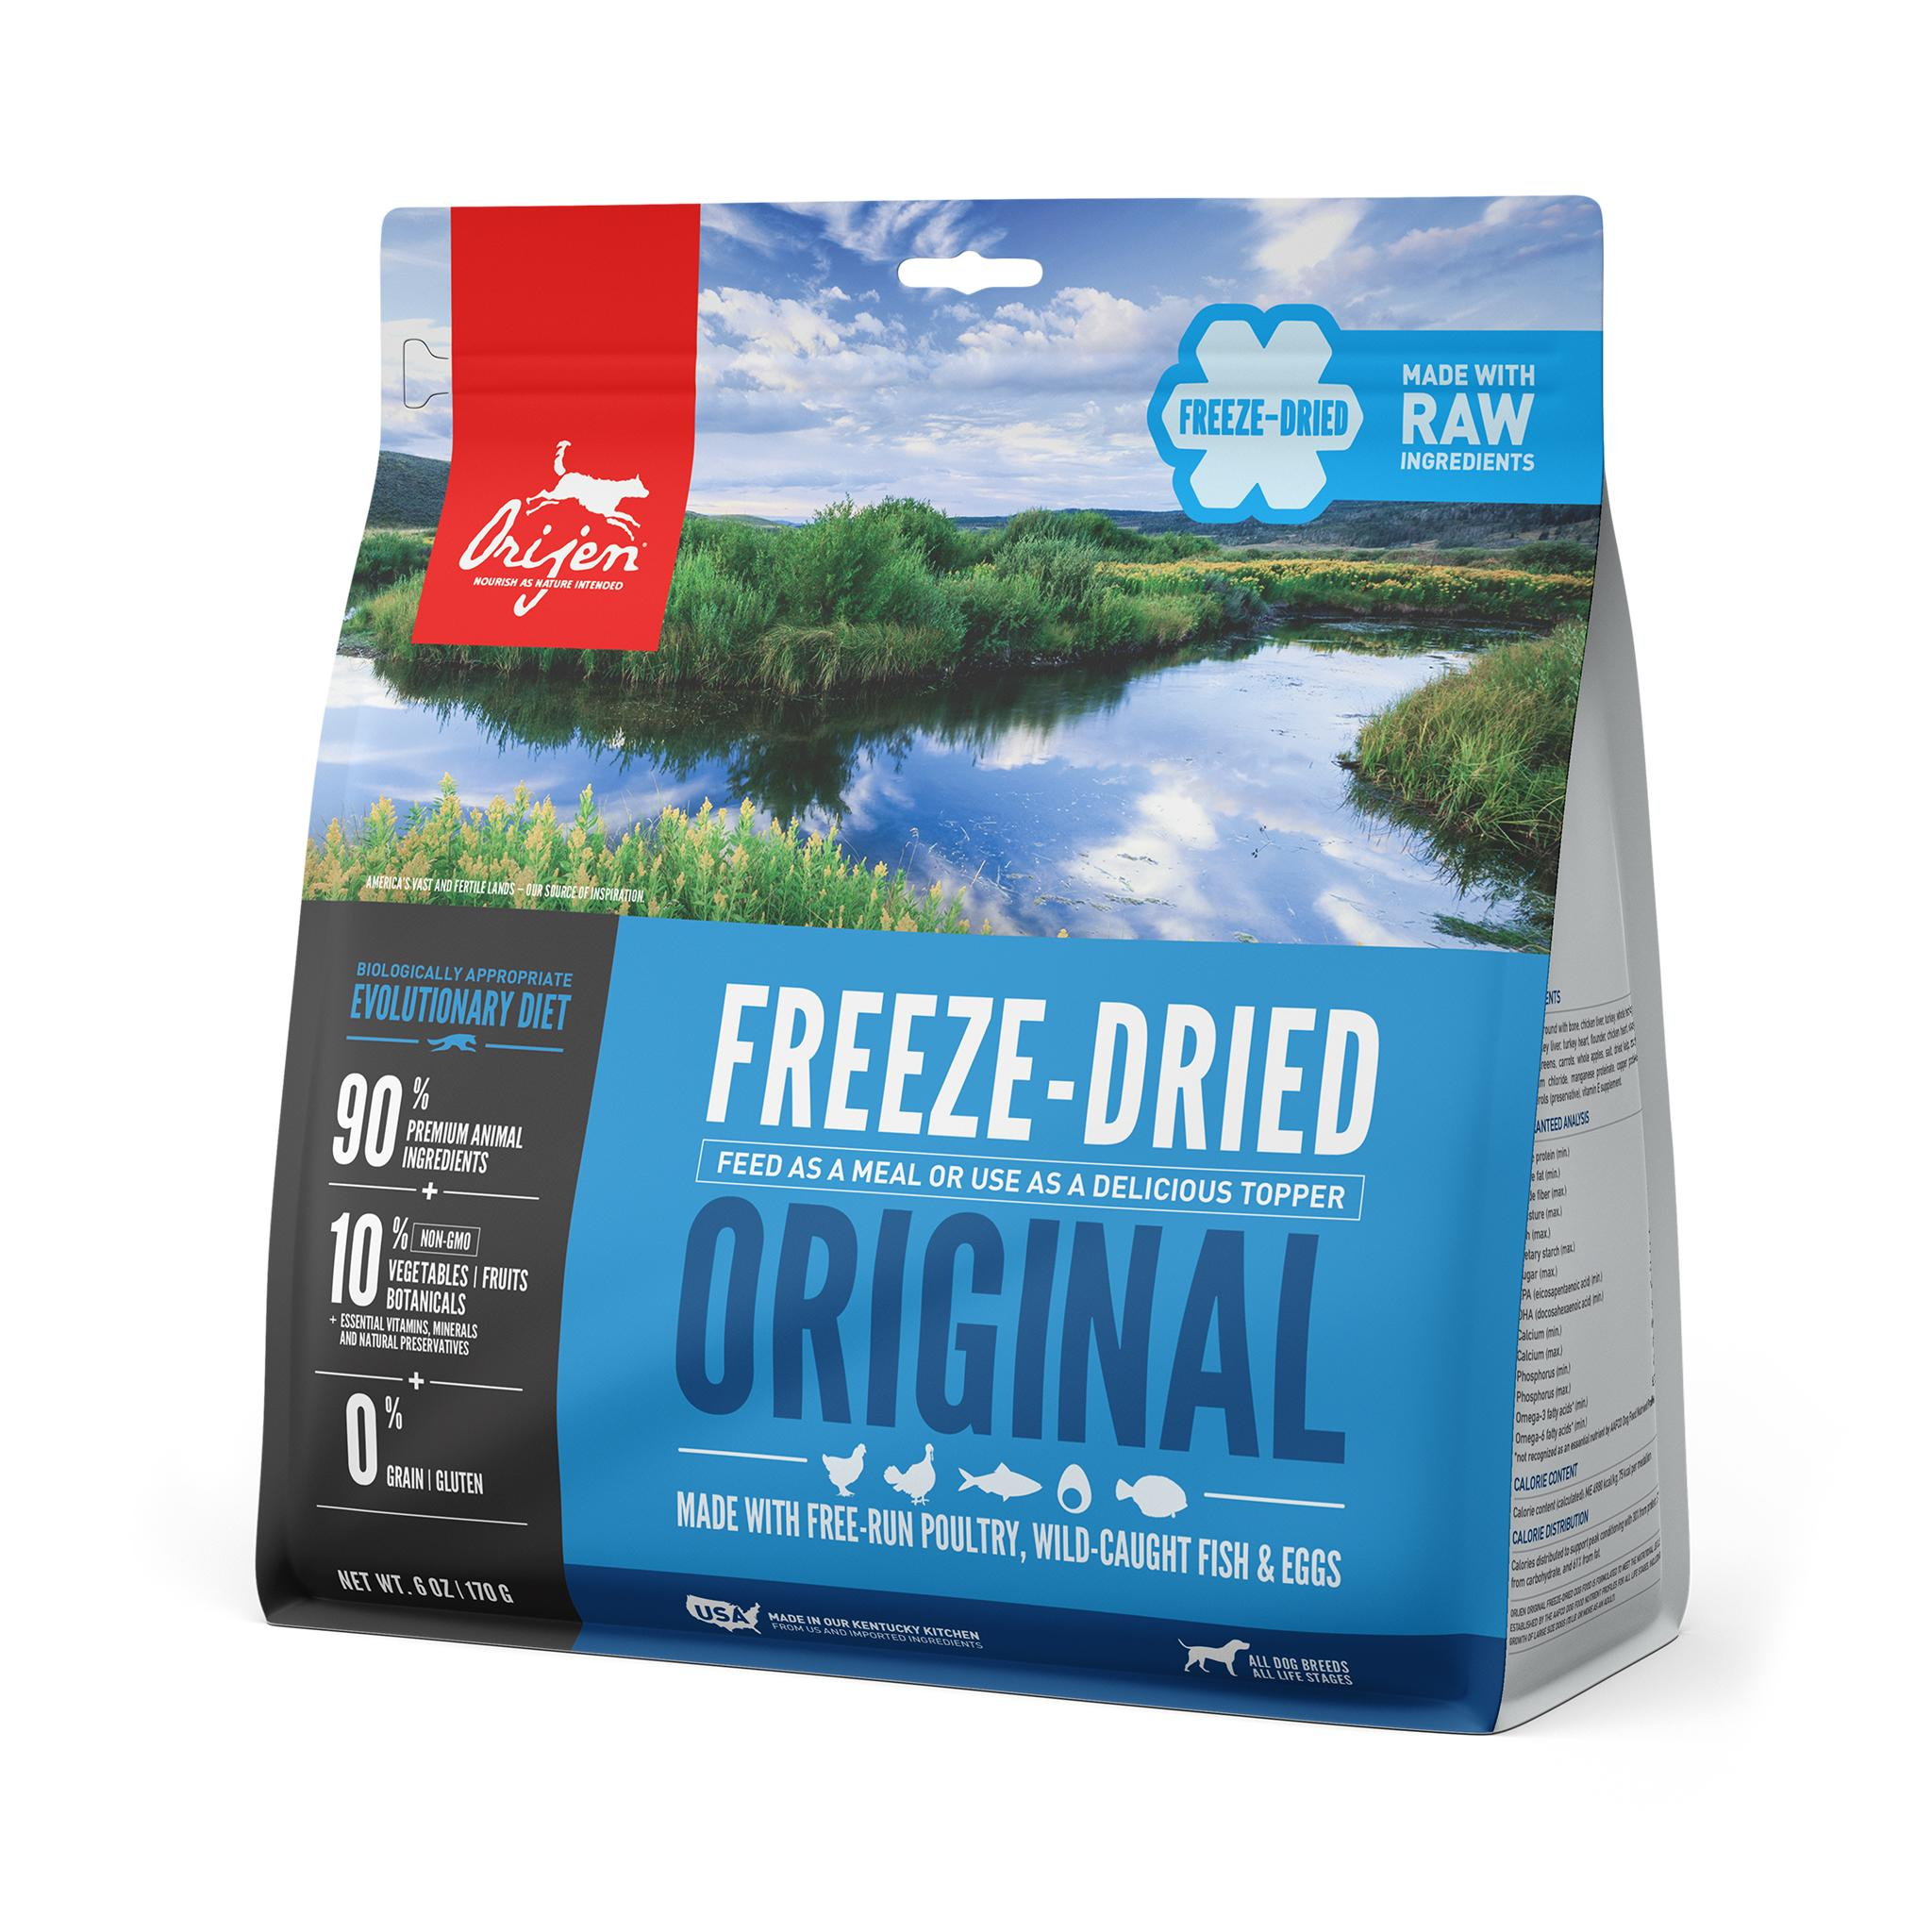 ORIJEN Original Grain-Free Freeze-Dried Dog Food, 6-oz